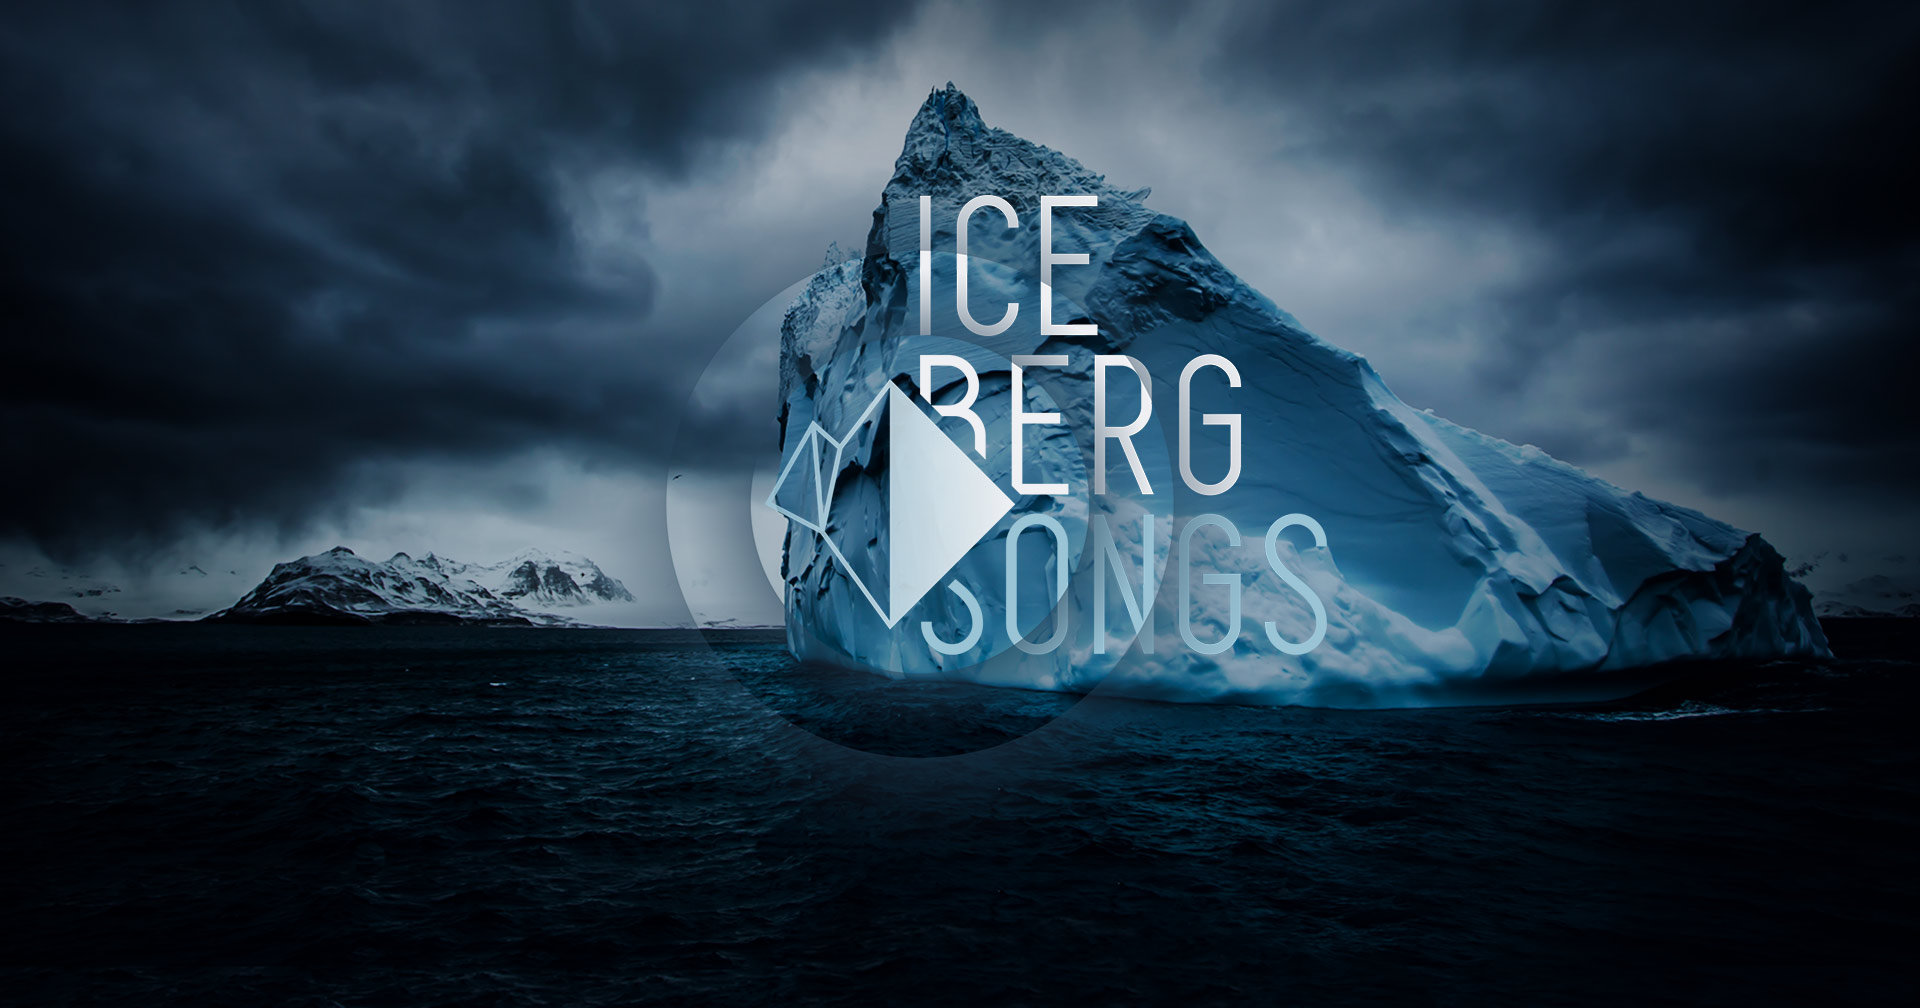 Icebergsongs